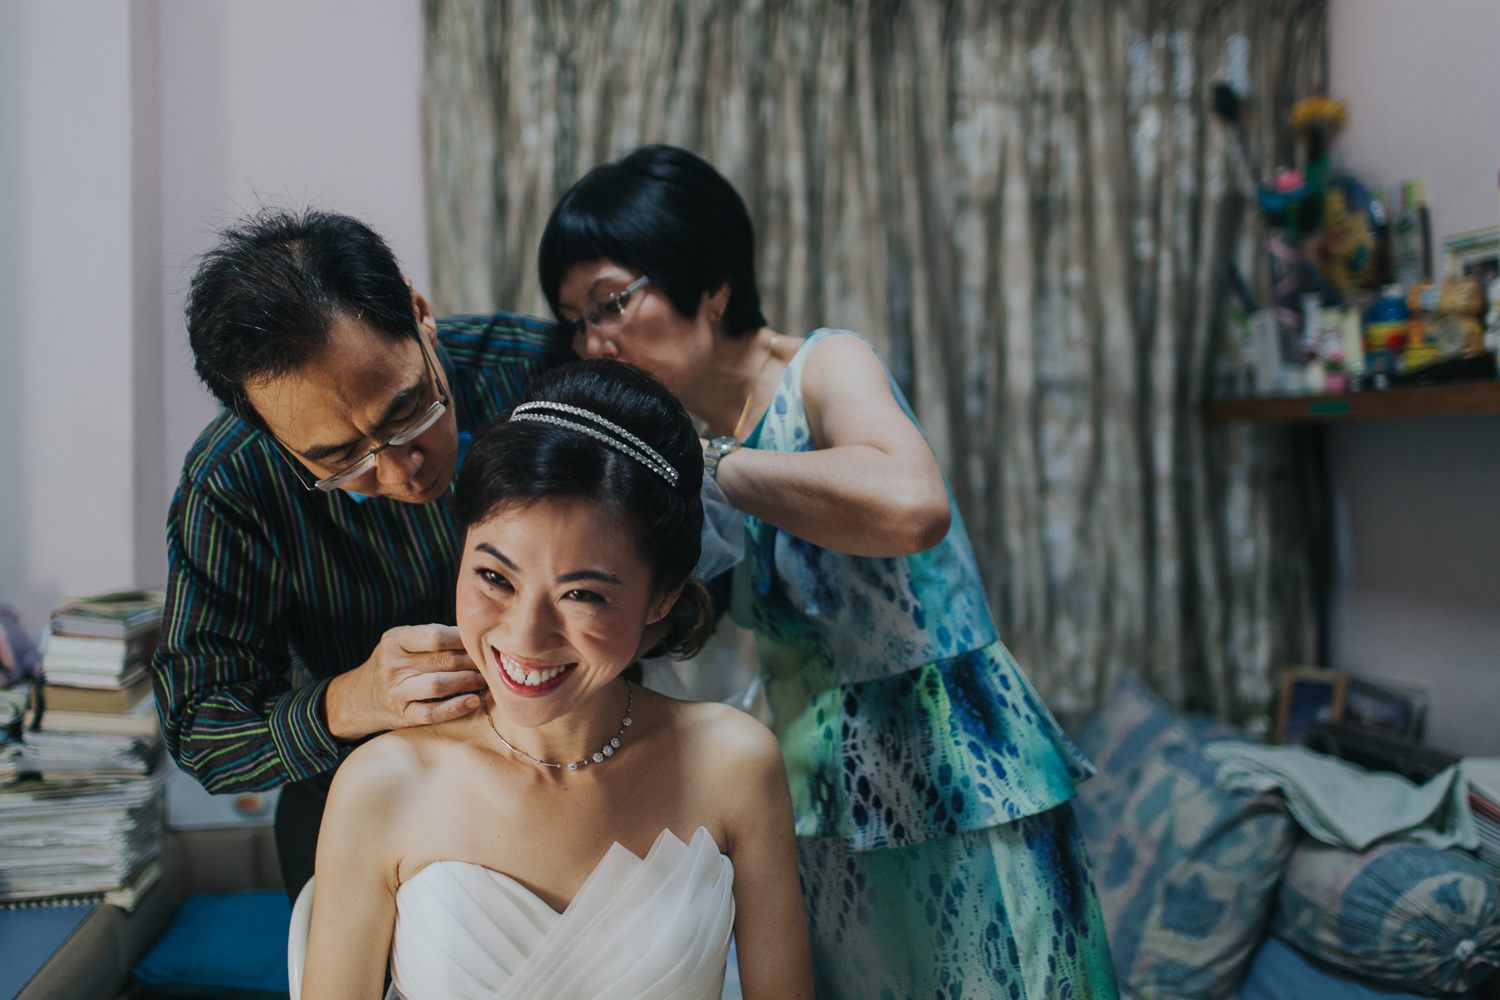 bittersweet photography Singapore wedding photographer jonathan 11